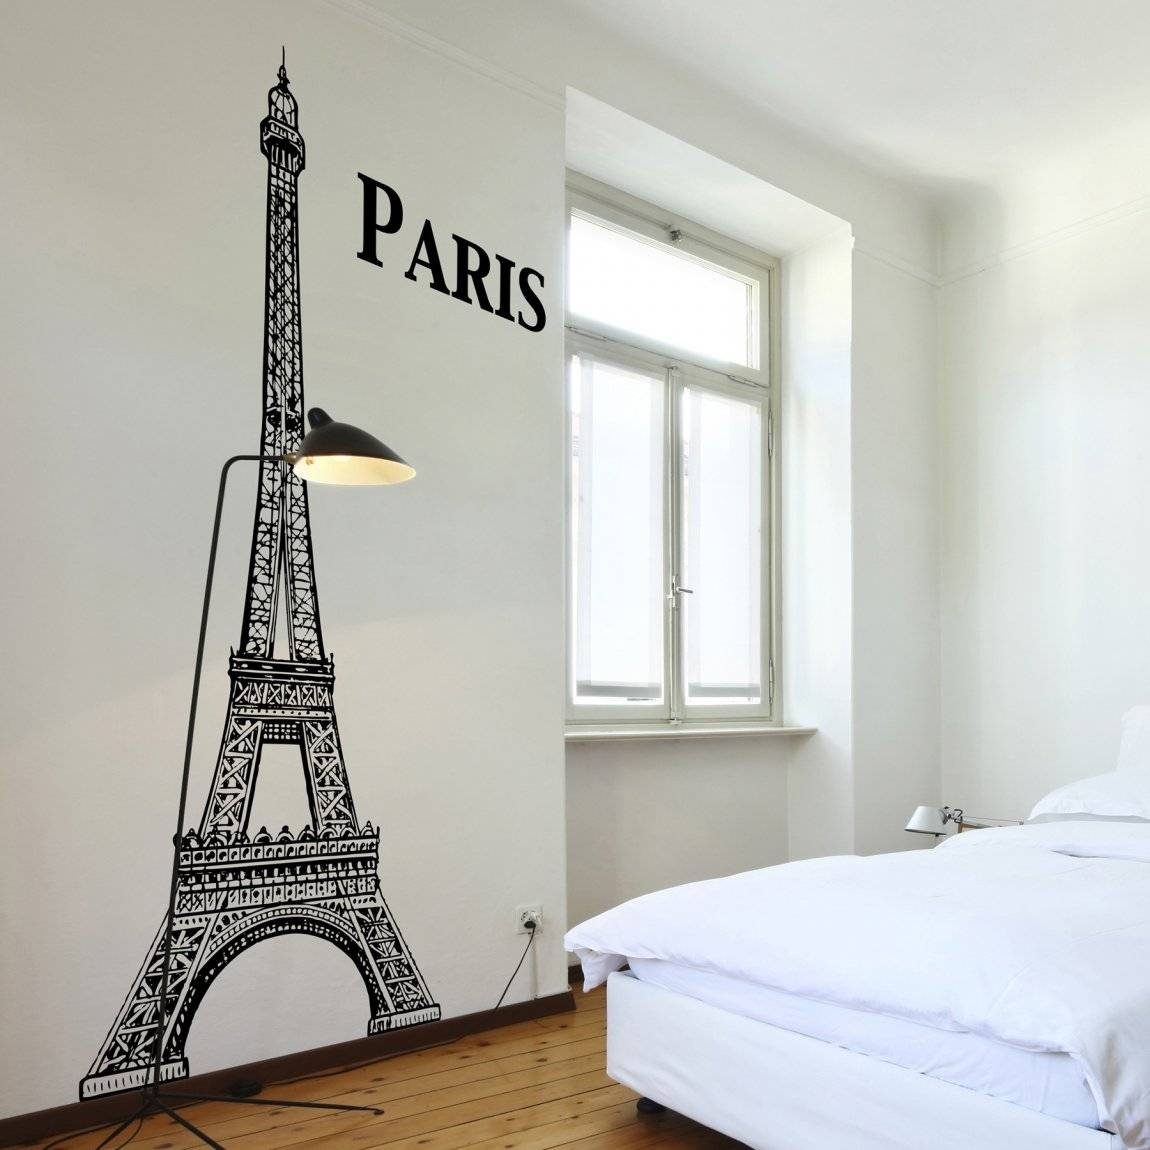 Paris Themed Wall Decals Images – Home Wall Decoration Ideas Throughout Current Paris Themed Stickers (View 6 of 15)